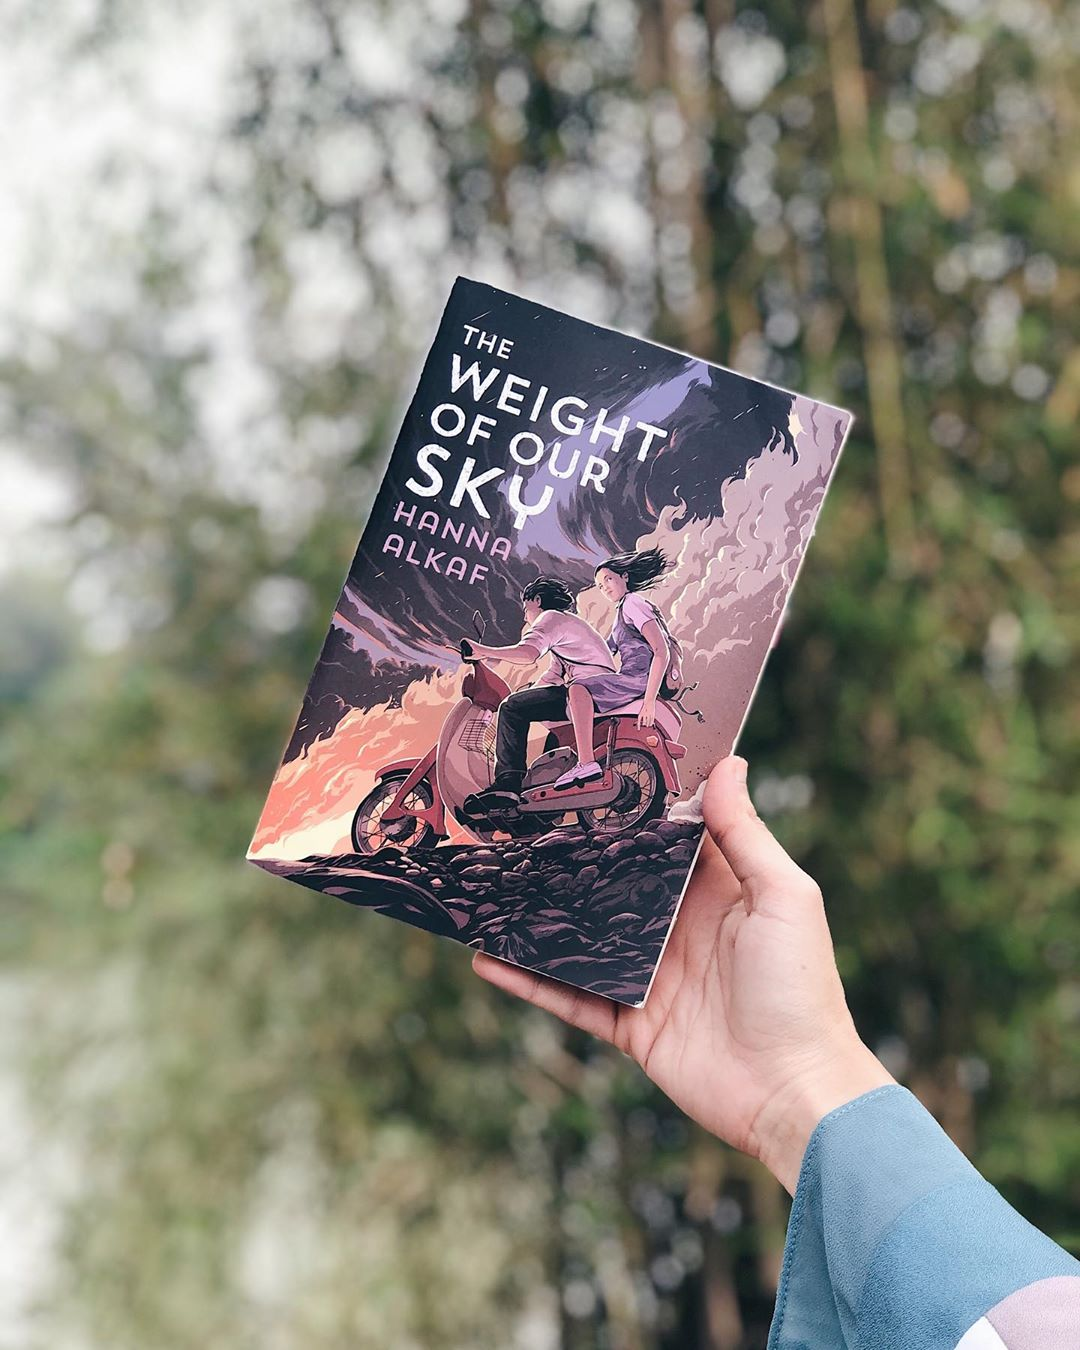 New Malaysian novels - The Weight of Our Sky